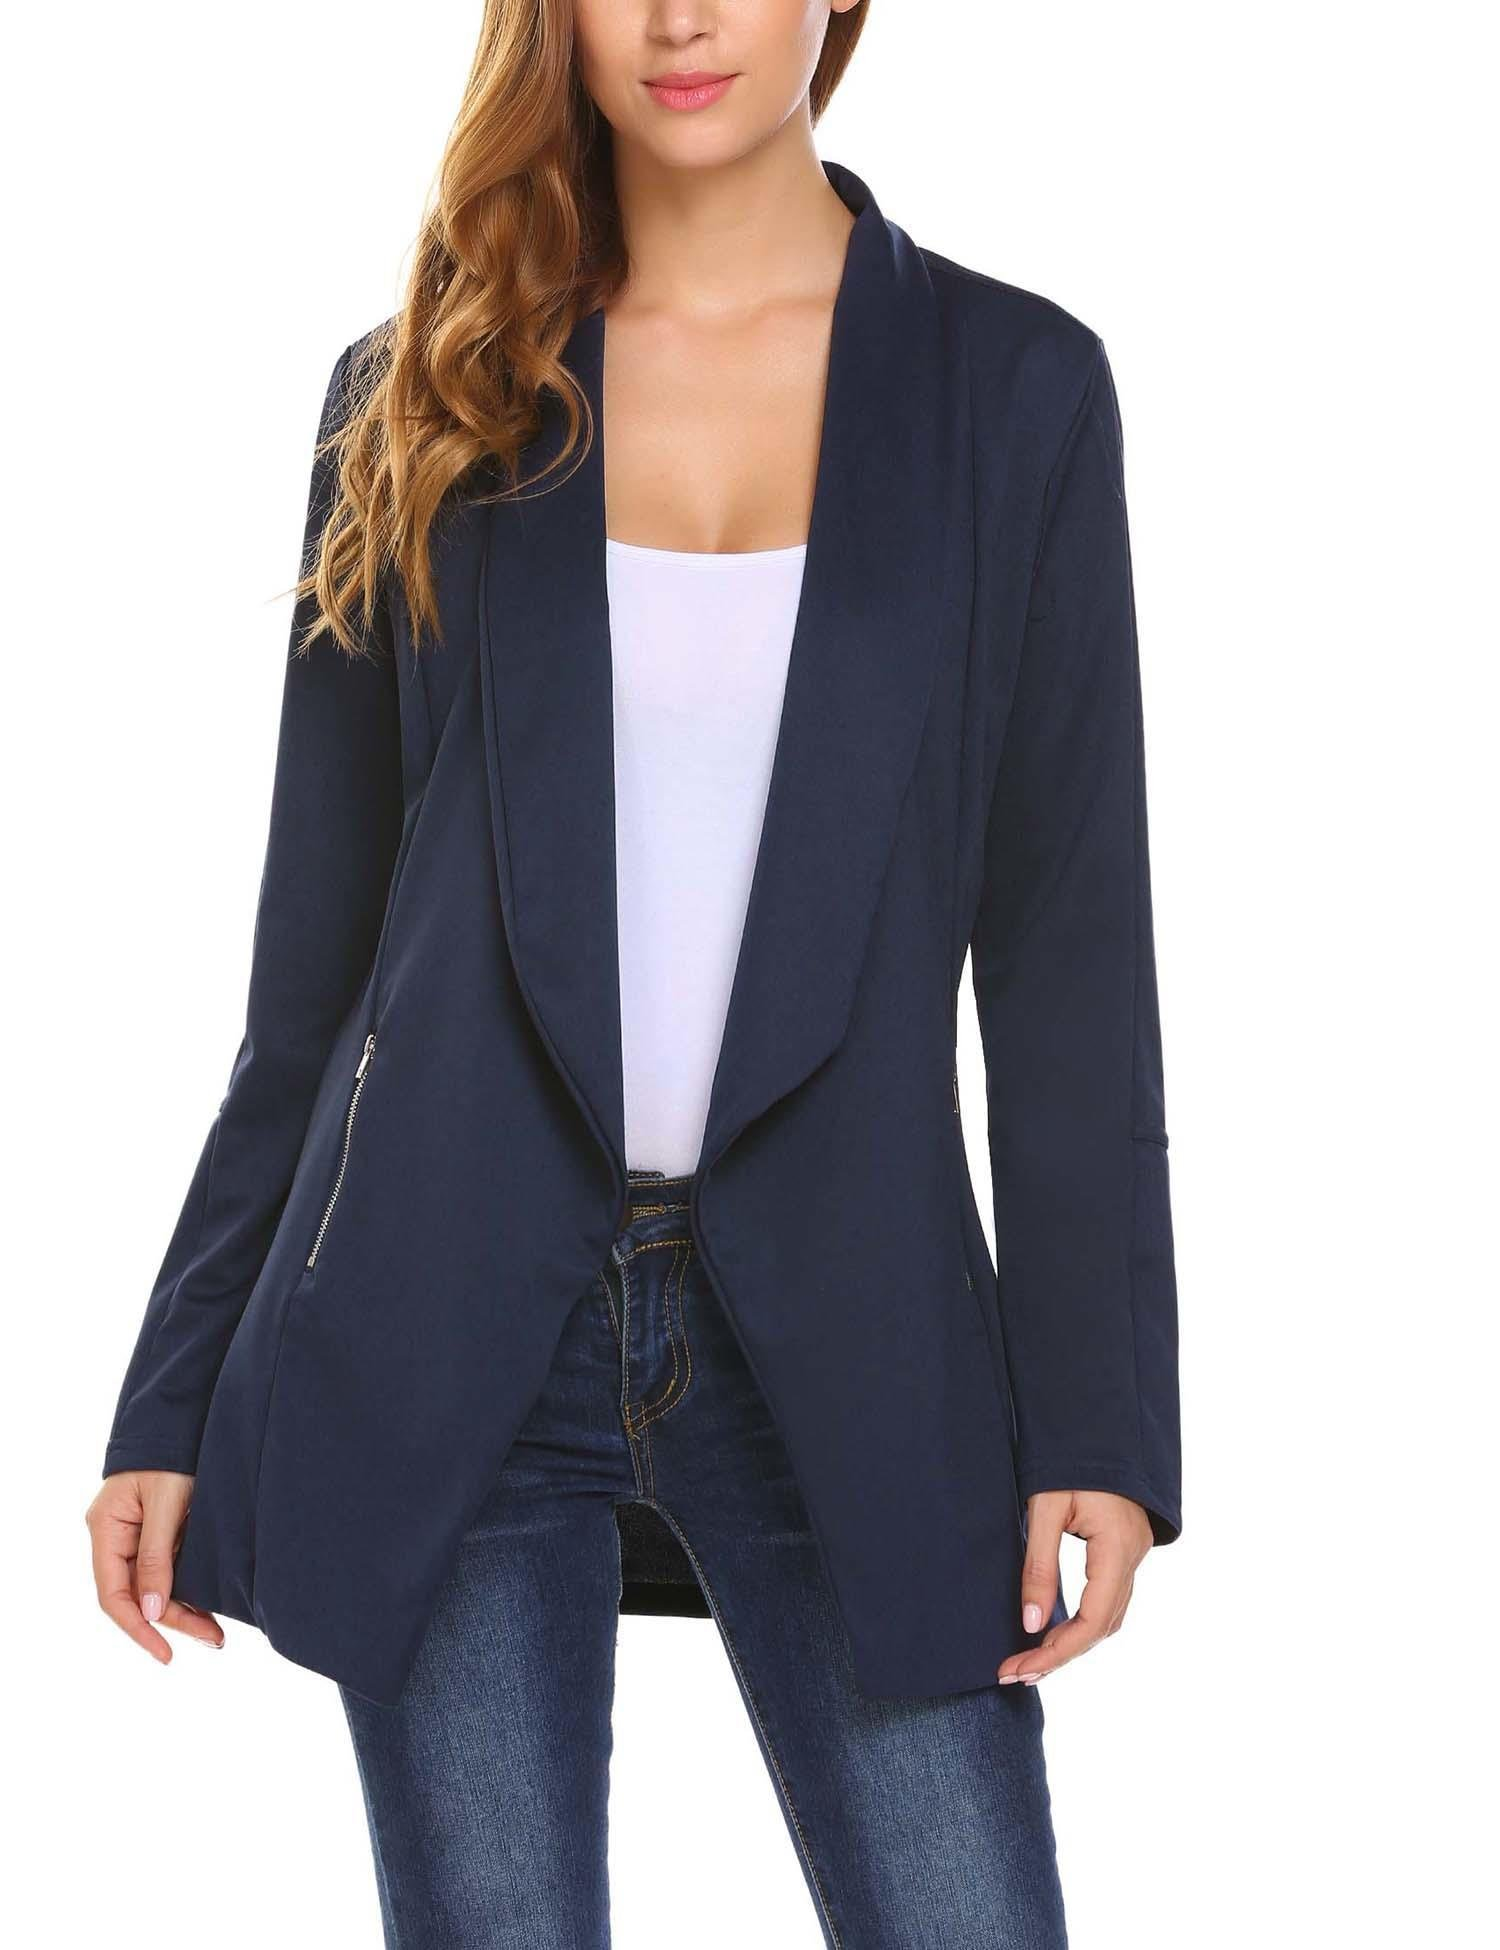 Zeagoo Women's Plus Size Lightweight Open Front Irregular Hem Draped Tuxedo Blazer Navy Blue/XXL by Zeagoo